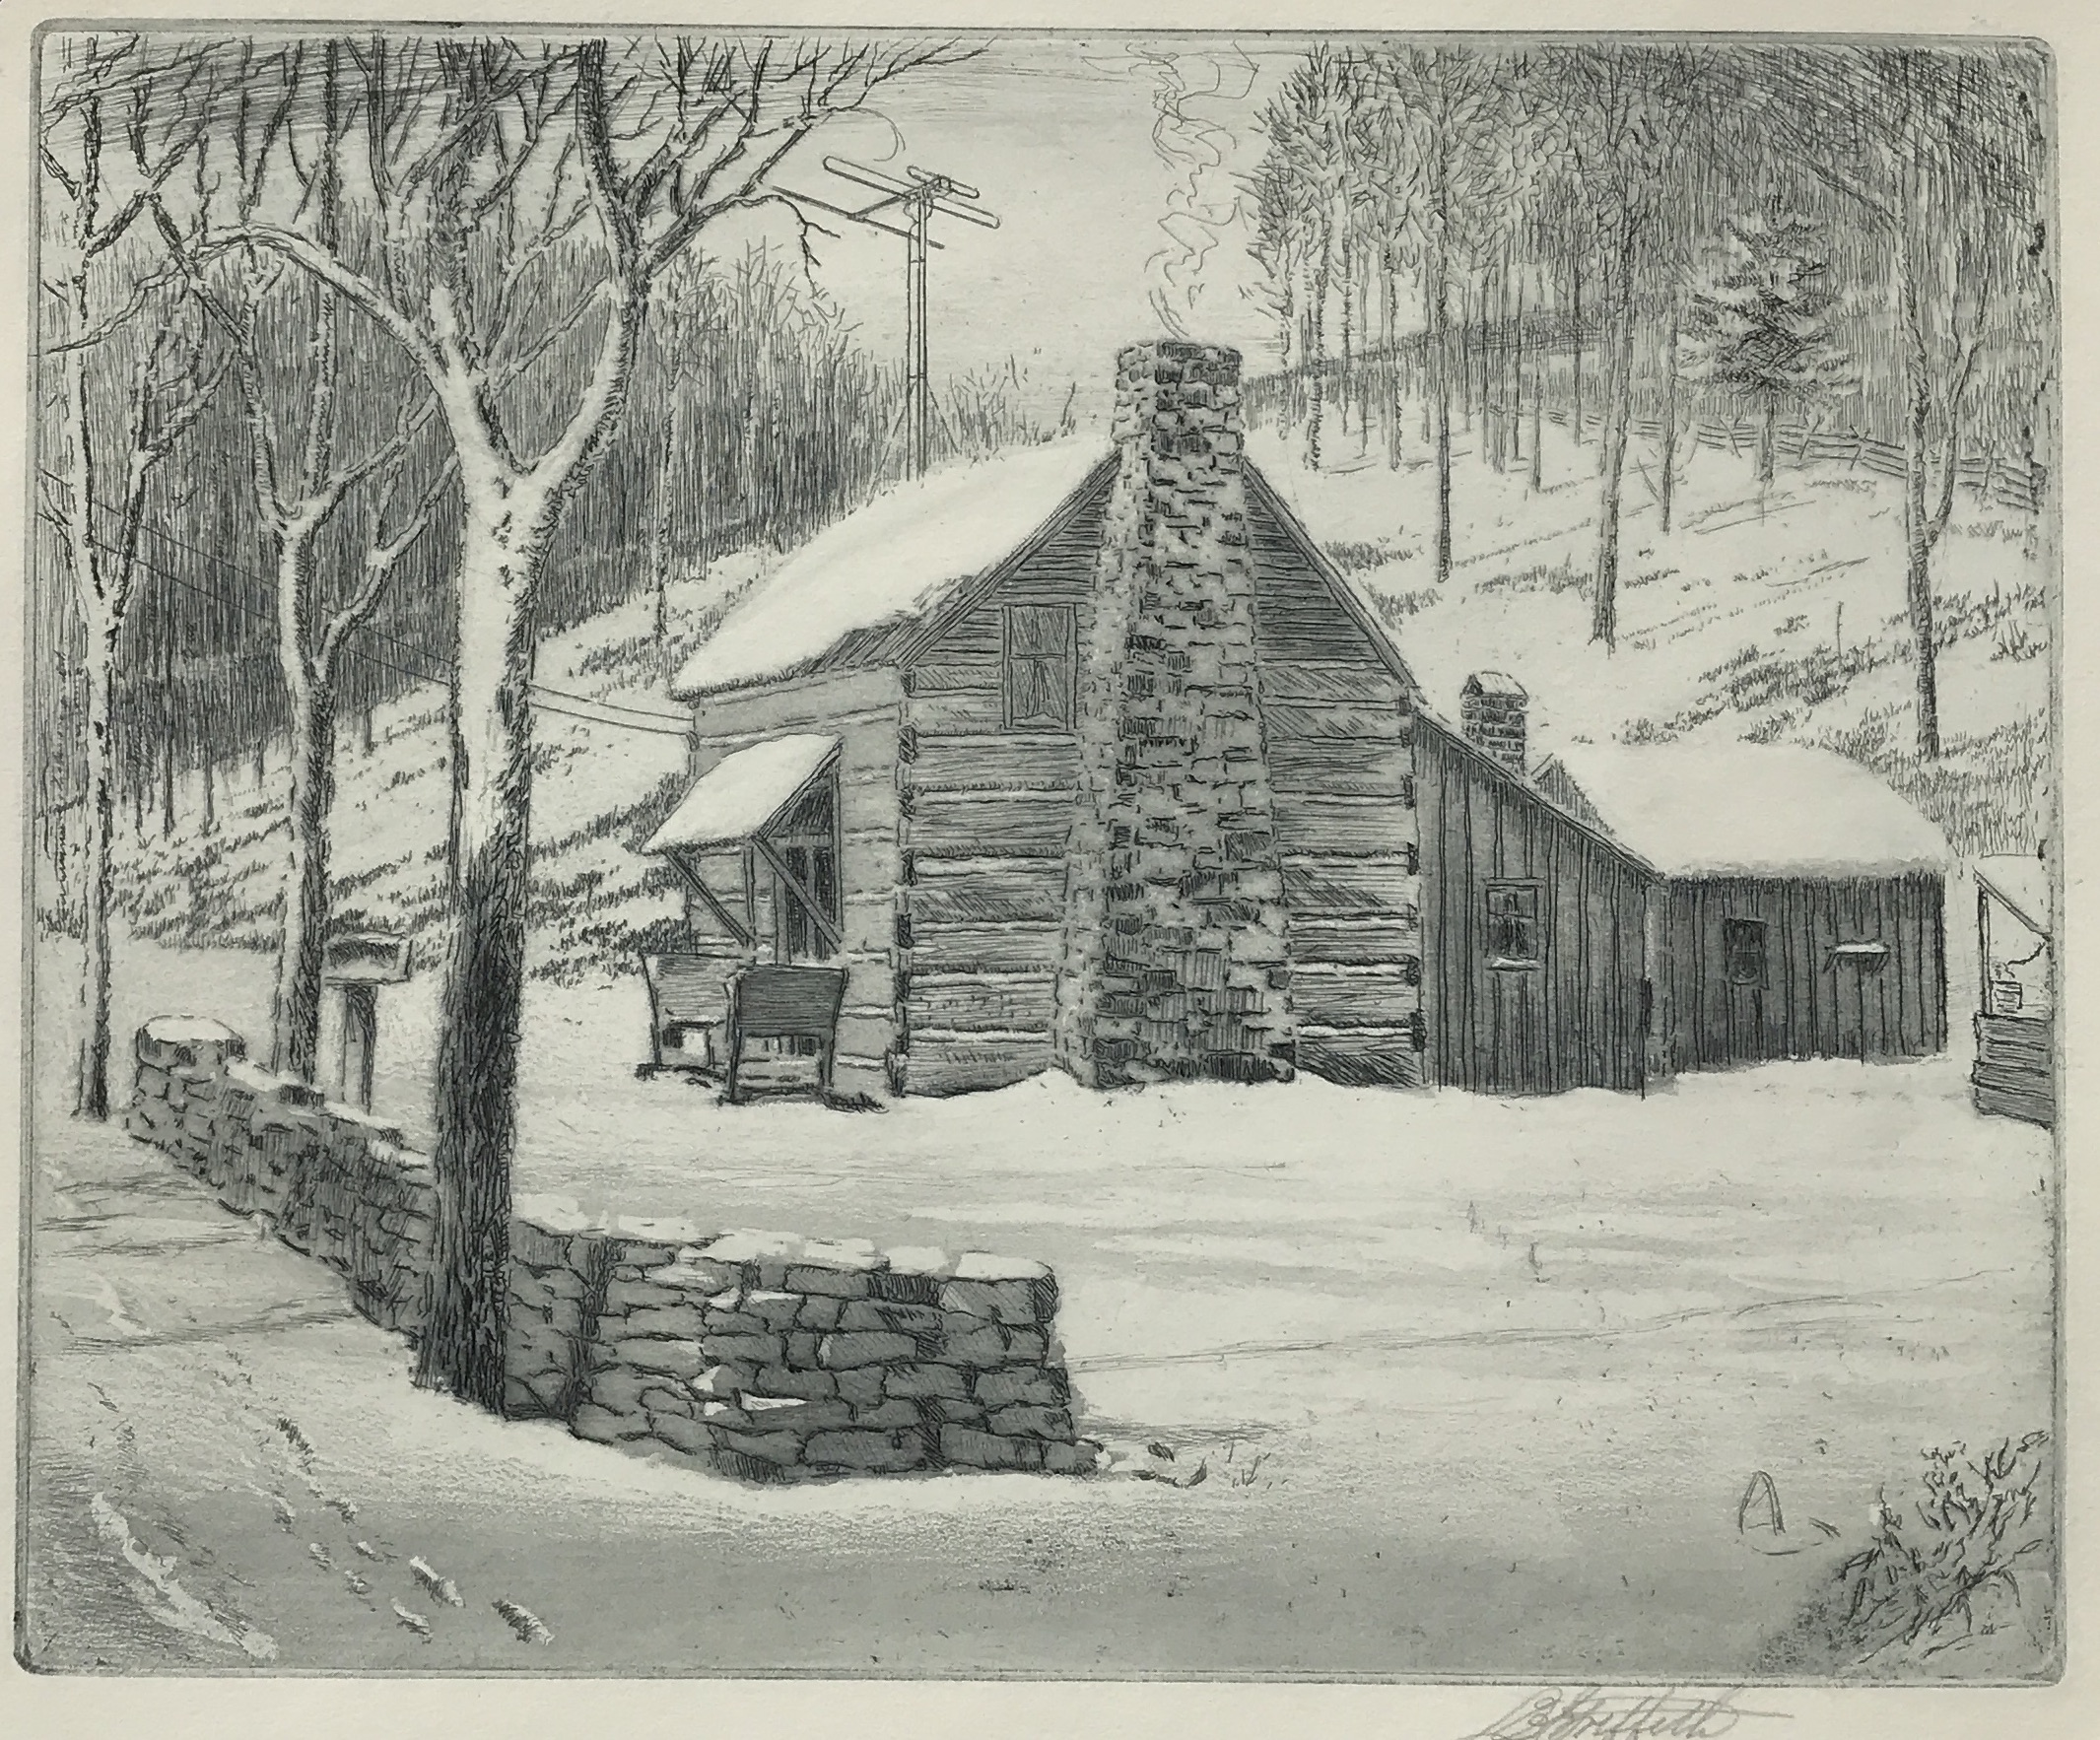 Griffith-Old Cabin in Winter